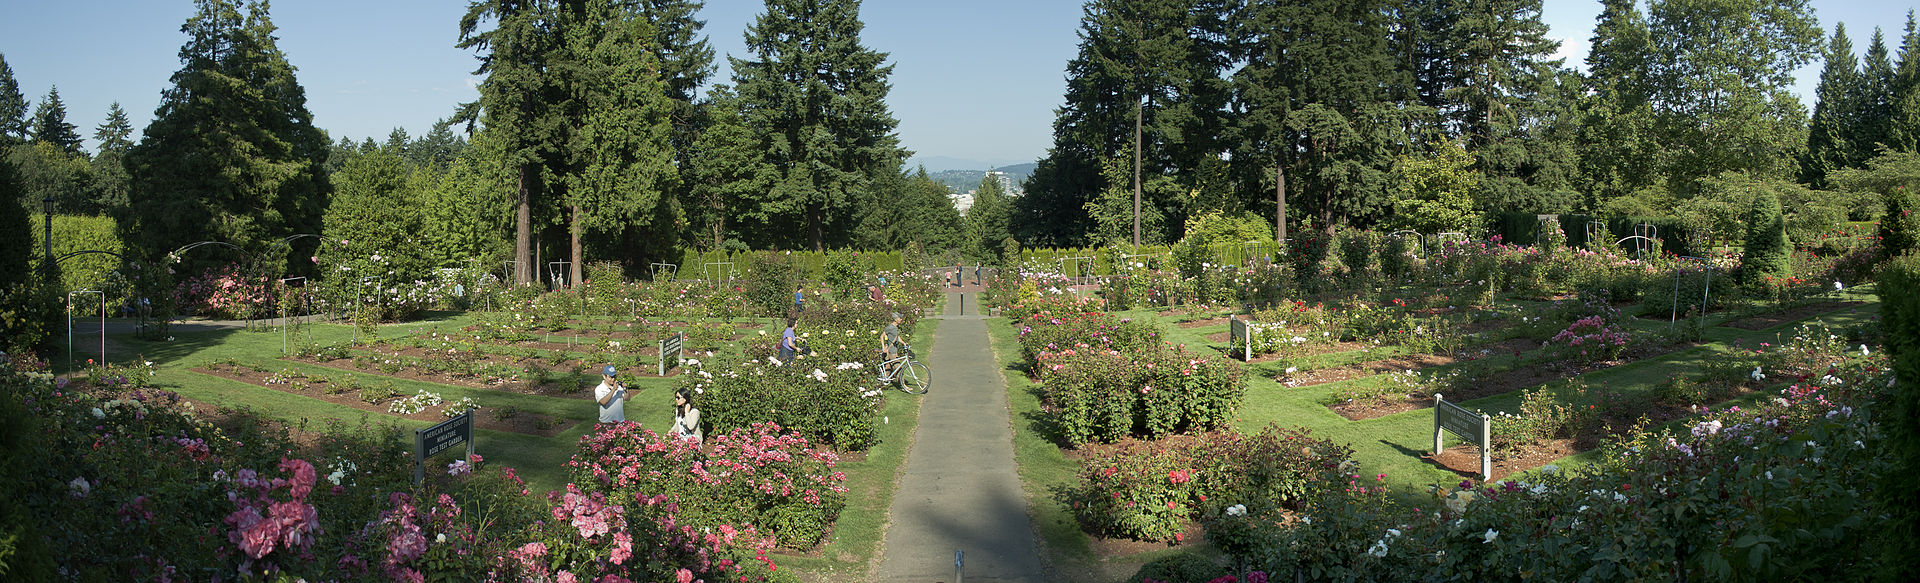 Rent a bicycle and ride to the Rose Garden